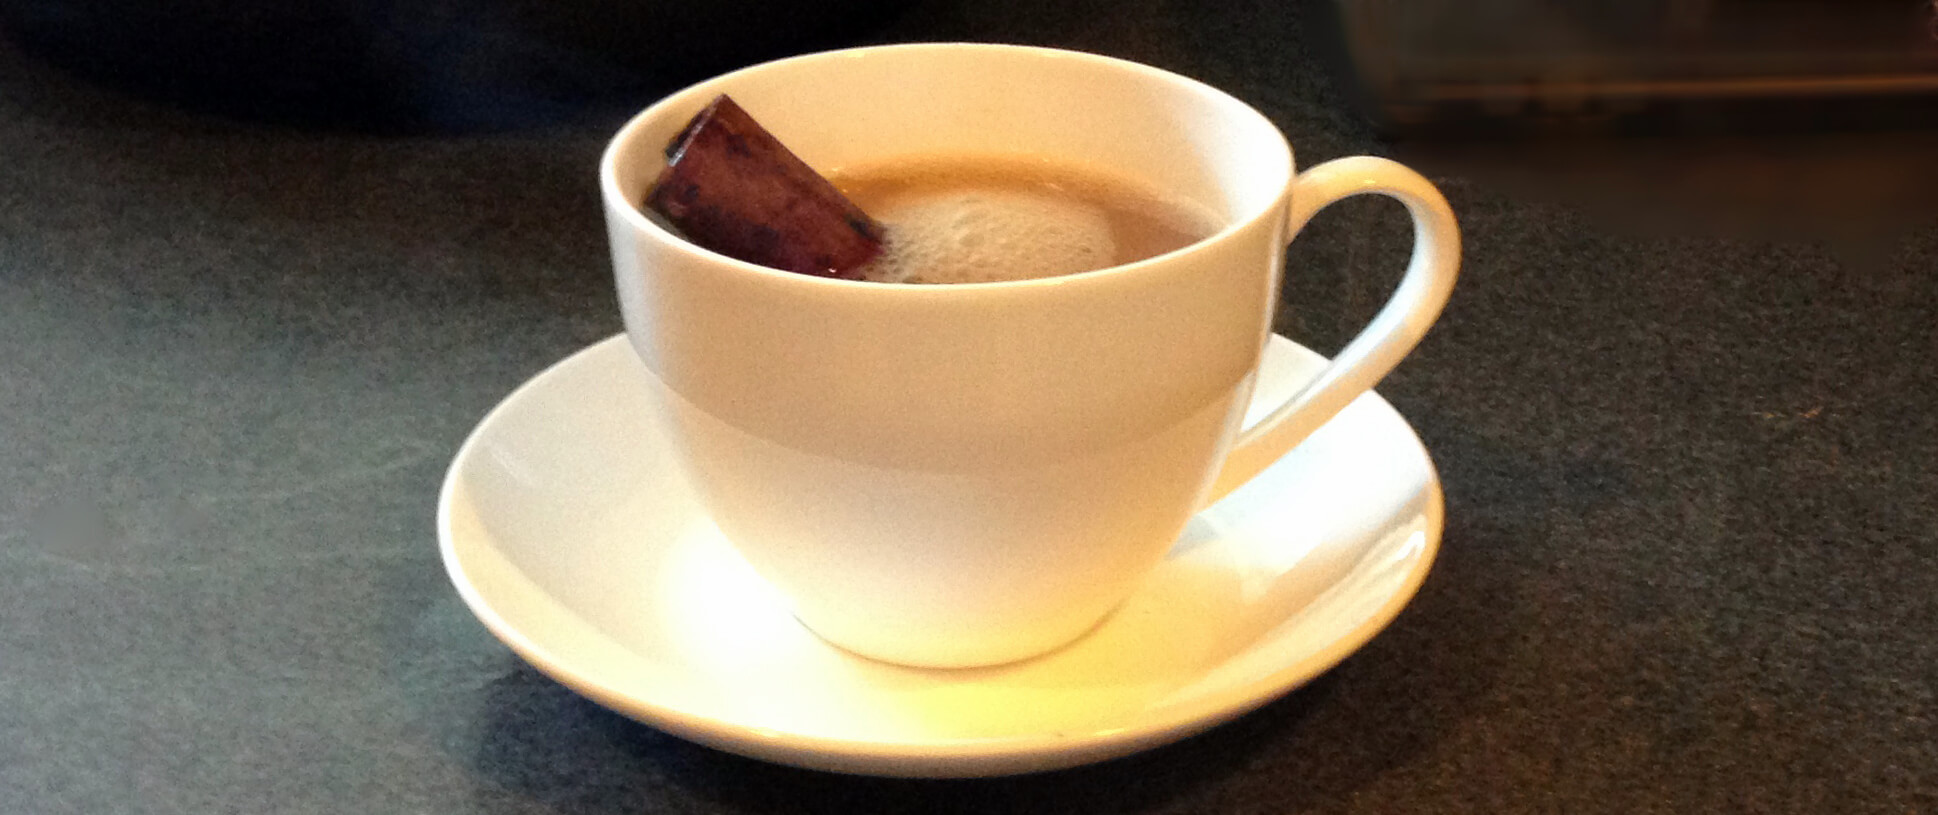 Spice up your life with this healthy, low calorie, Chai Tea recipe by Fitness by Eve.